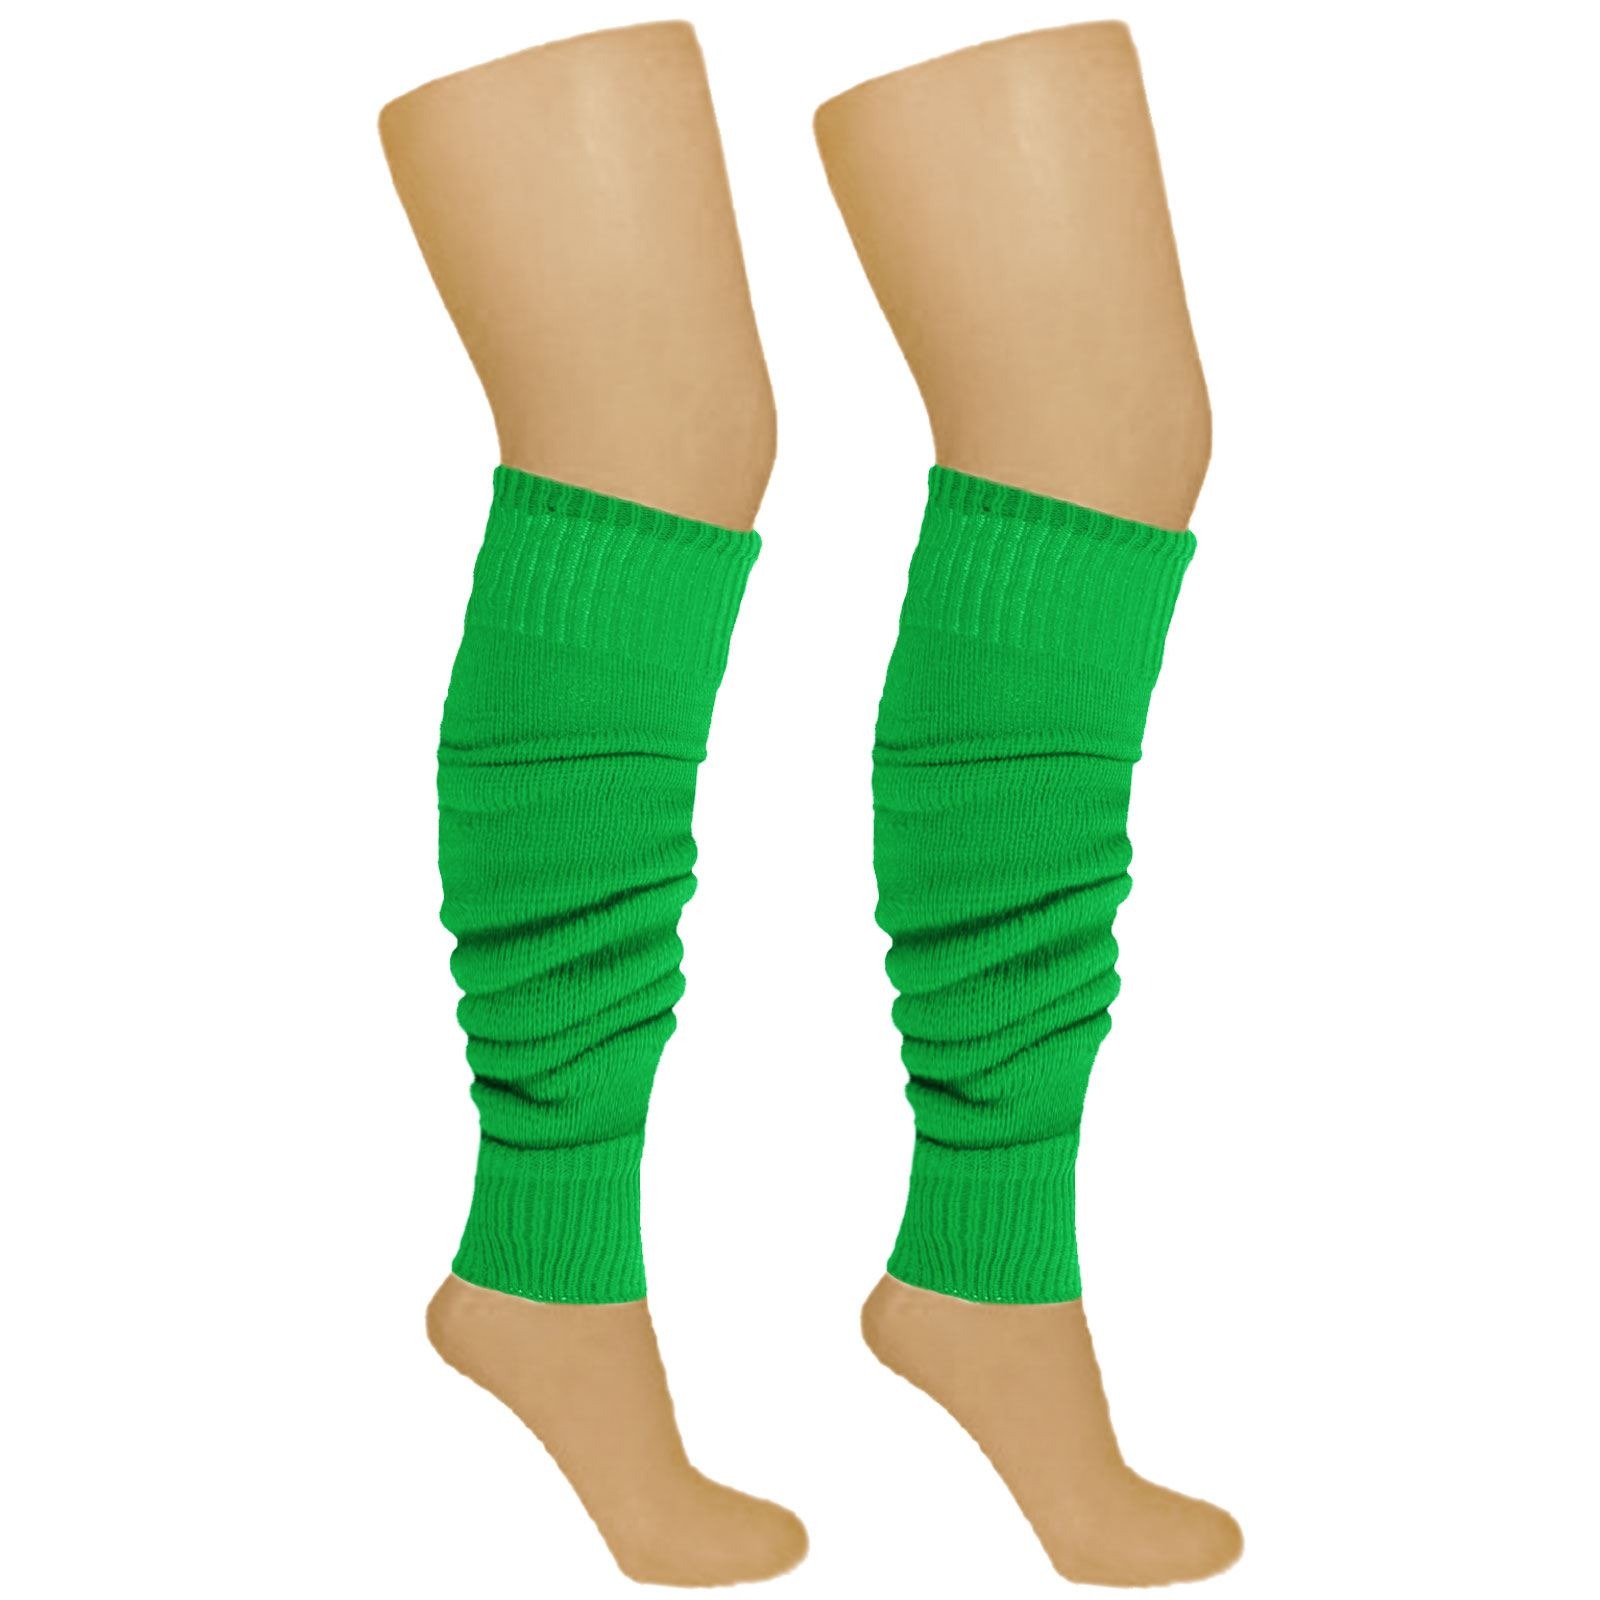 Sears carries women's socks in many designs and colors. Choose from a wide selection of women's ankle socks, crew socks and other styles.